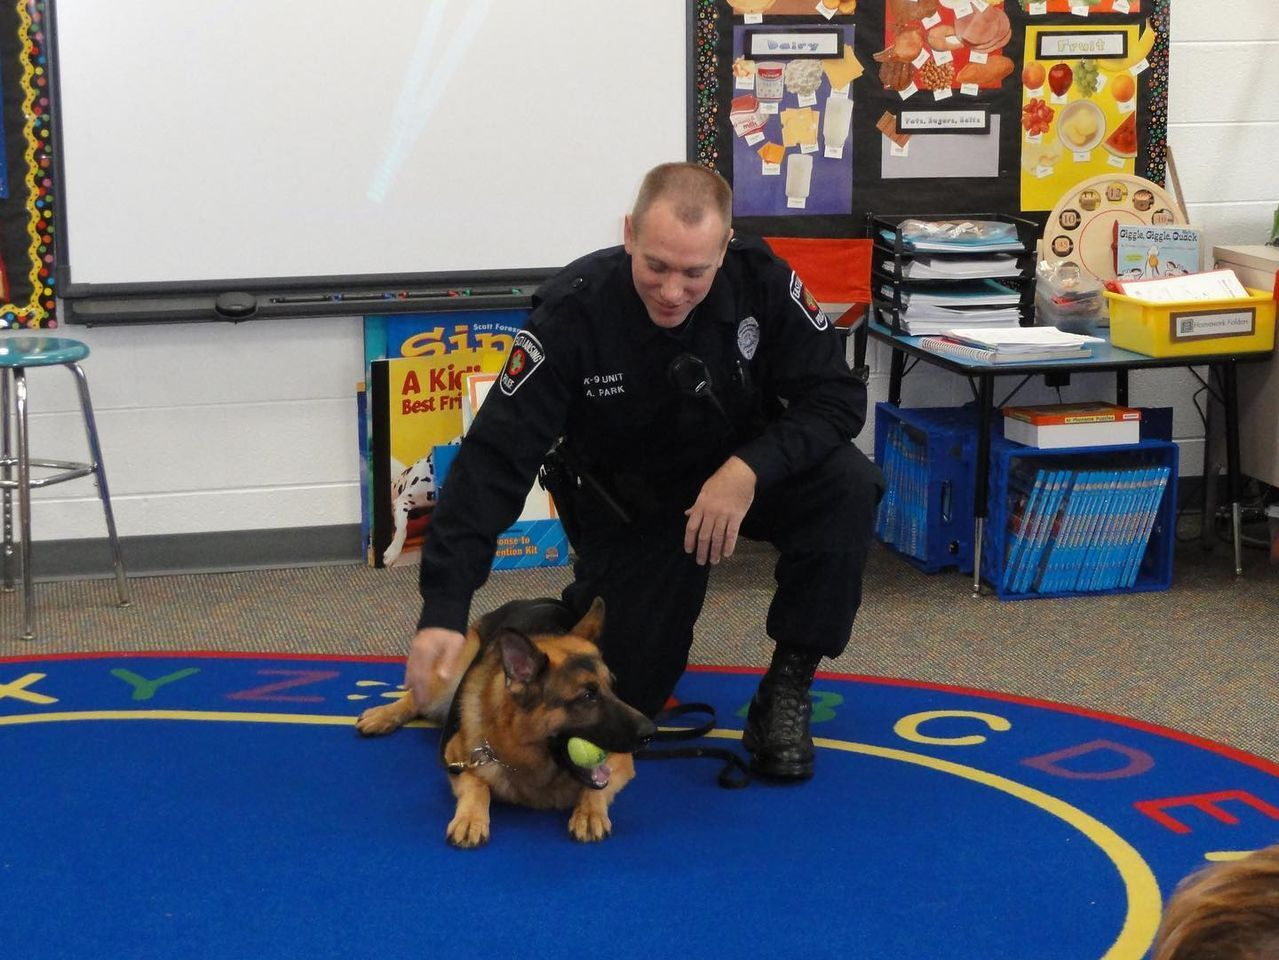 Sgt. Parks and Retired K-9 Max